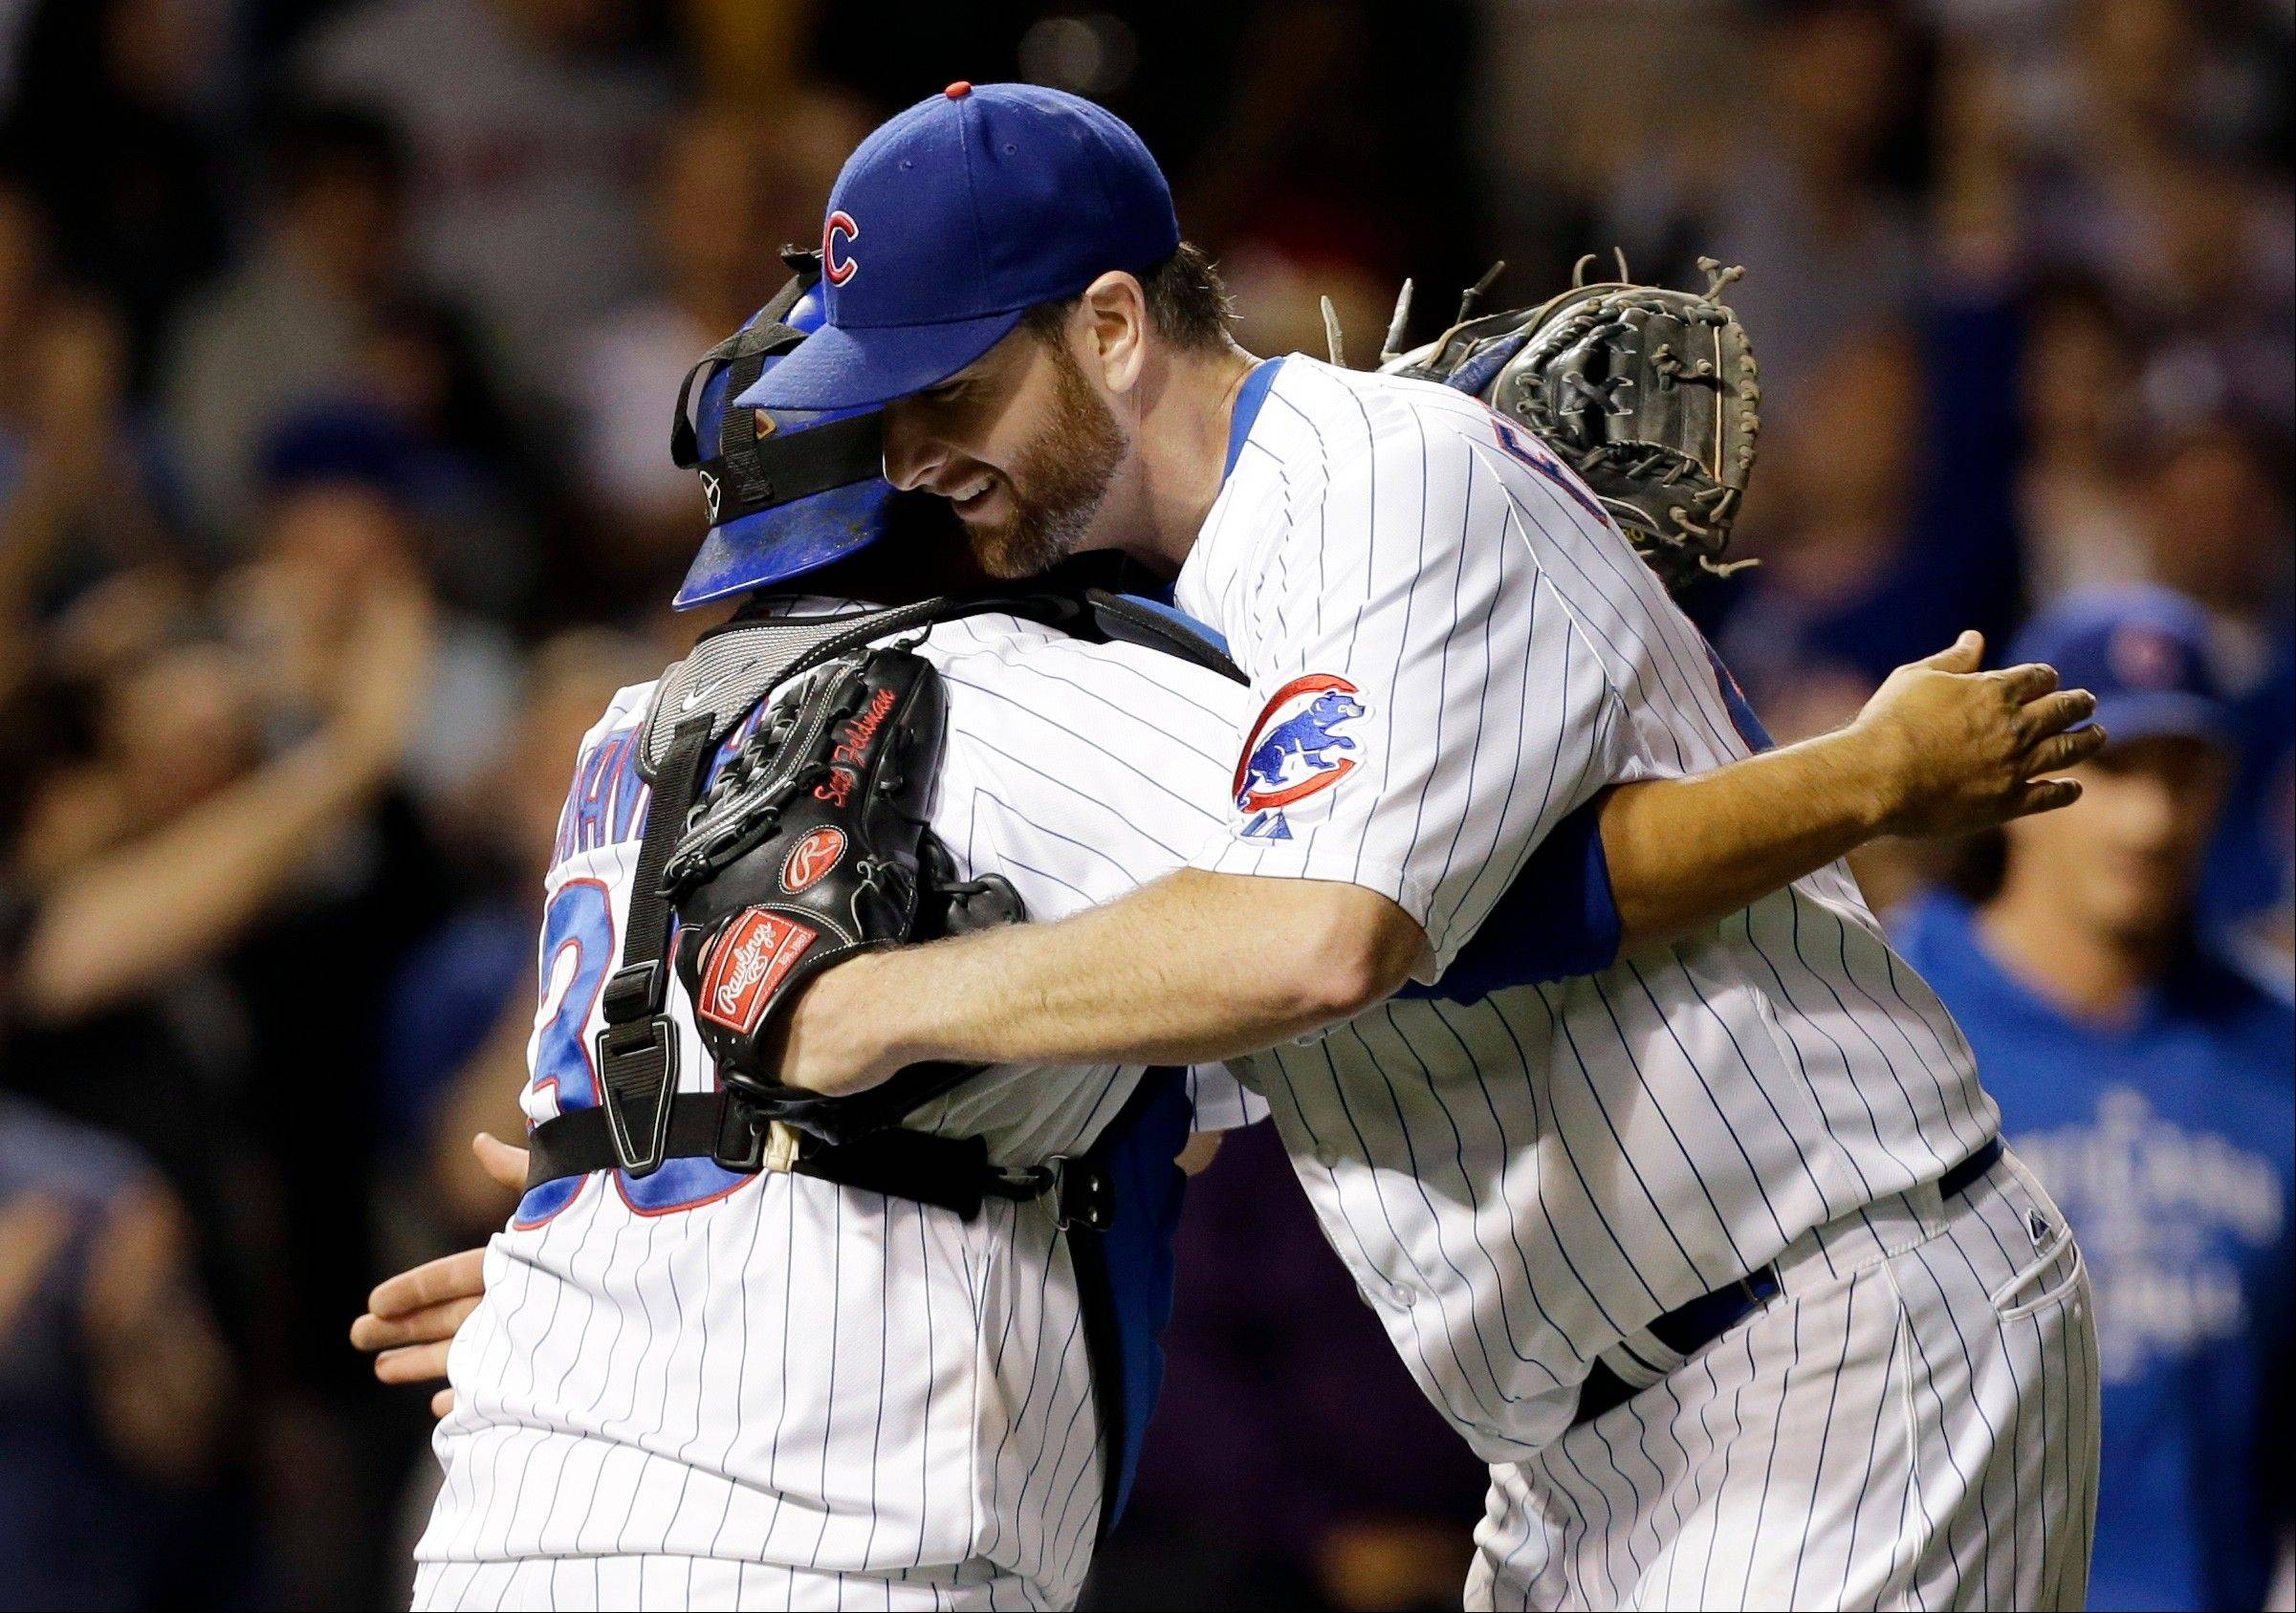 Chicago Cubs starter Scott Feldman, right, celebrates with catcher Dioner Navarro after the Cubs defeated the San Diego Padres 6-2 in a baseball game in Chicago, Wednesday, May 1, 2013.